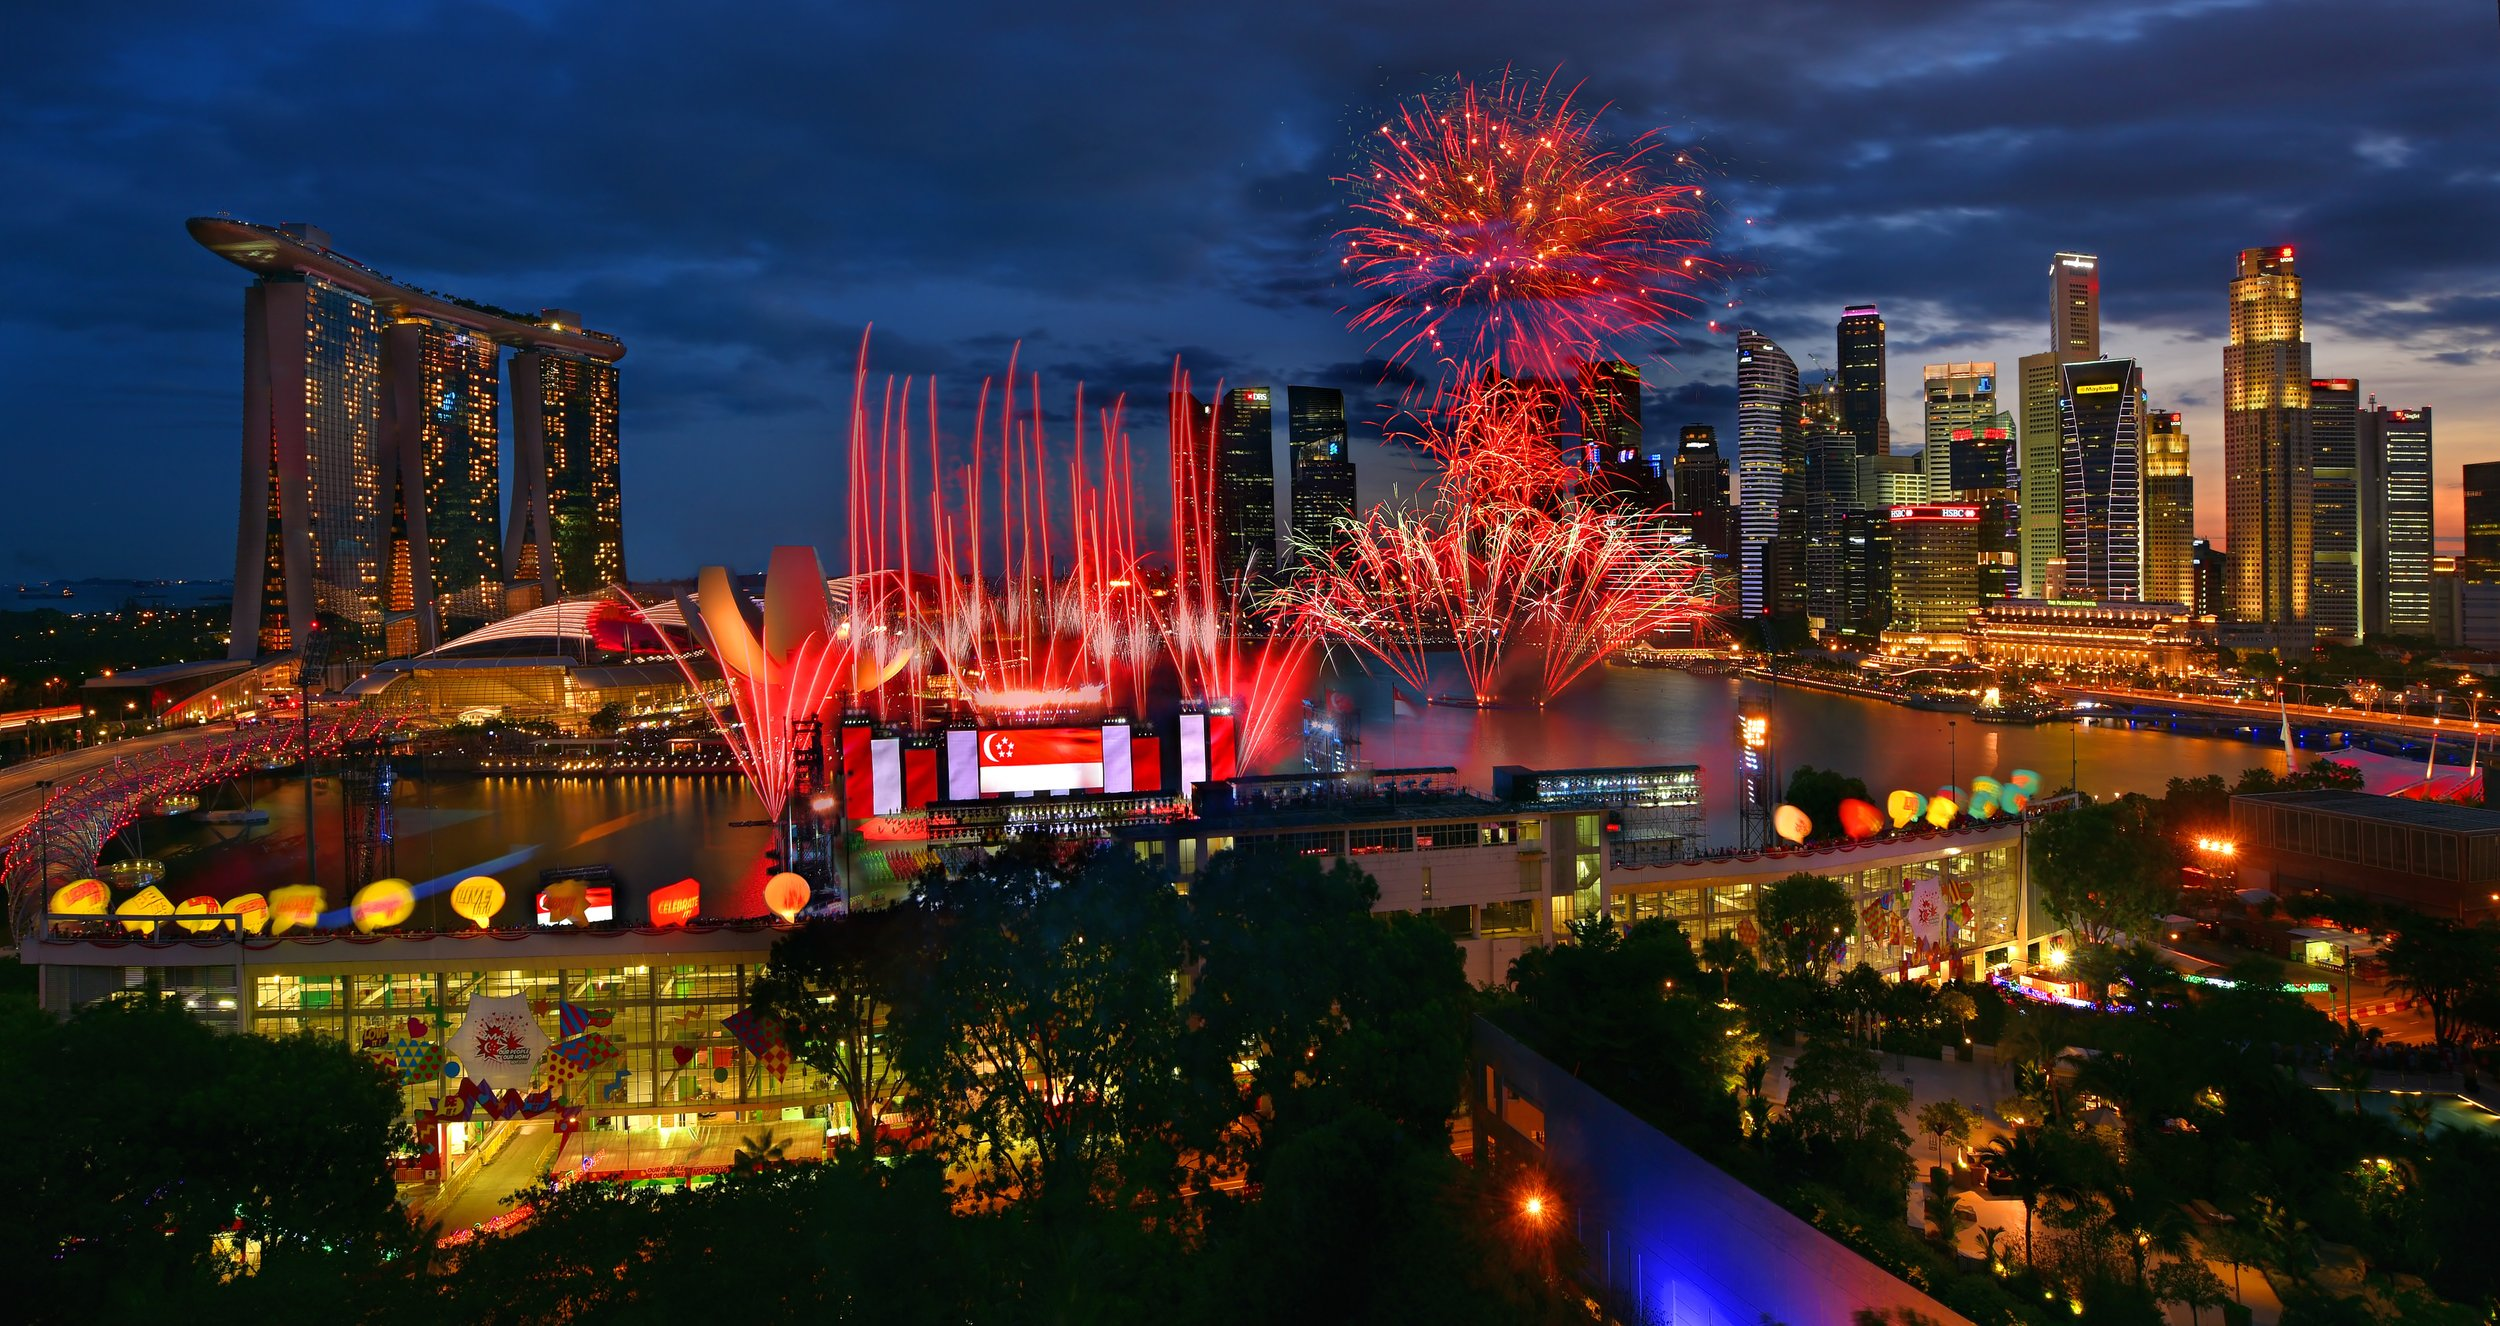 The fireworks on Singapore's National Day!